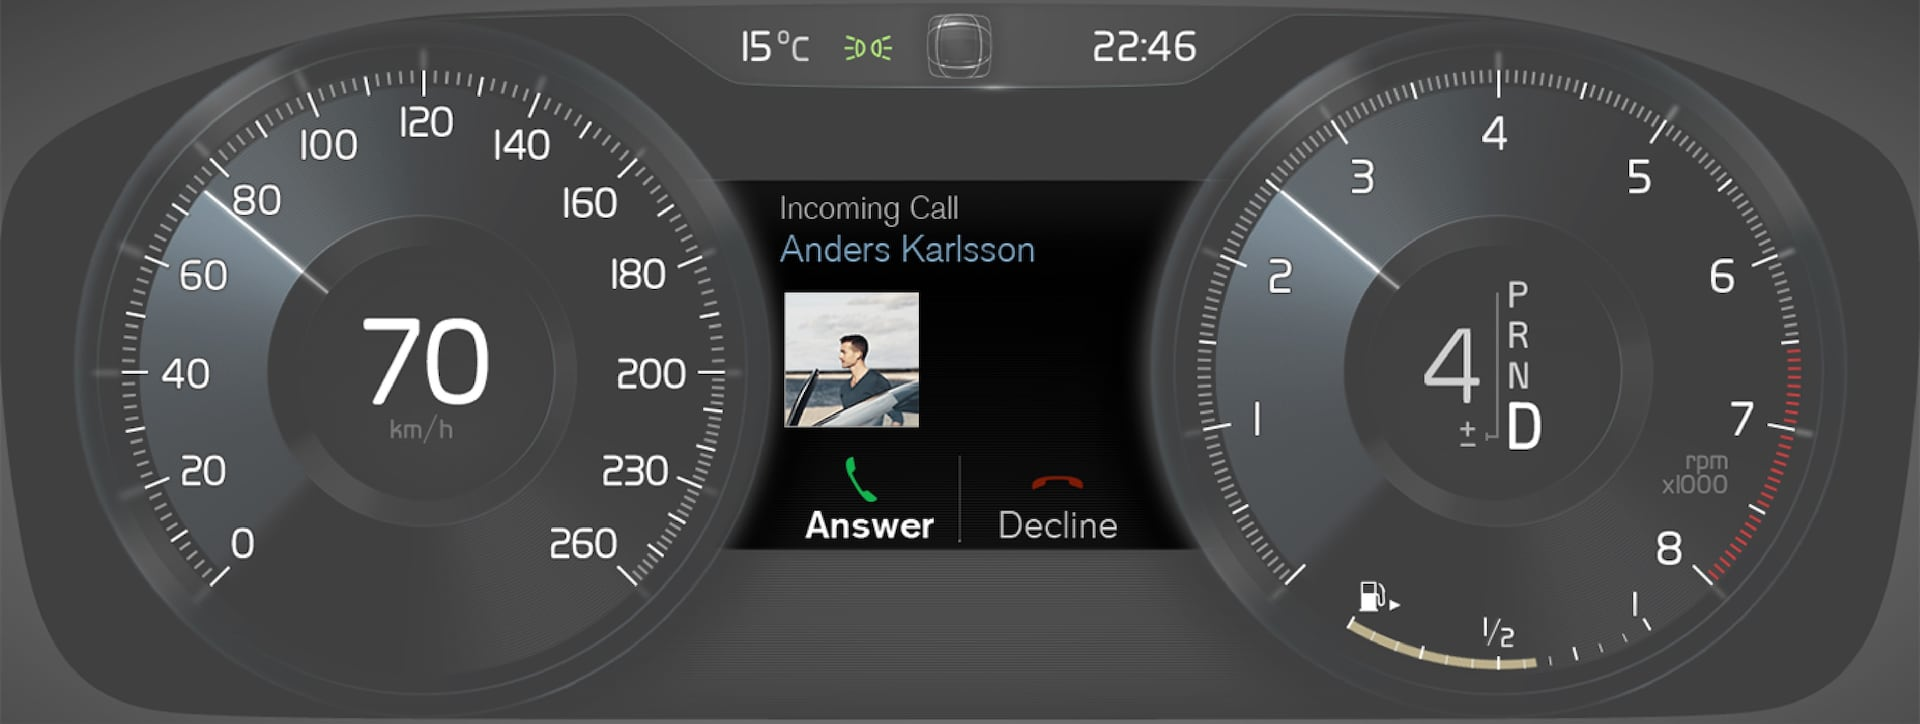 P5-1507–I+C–Message in driver display